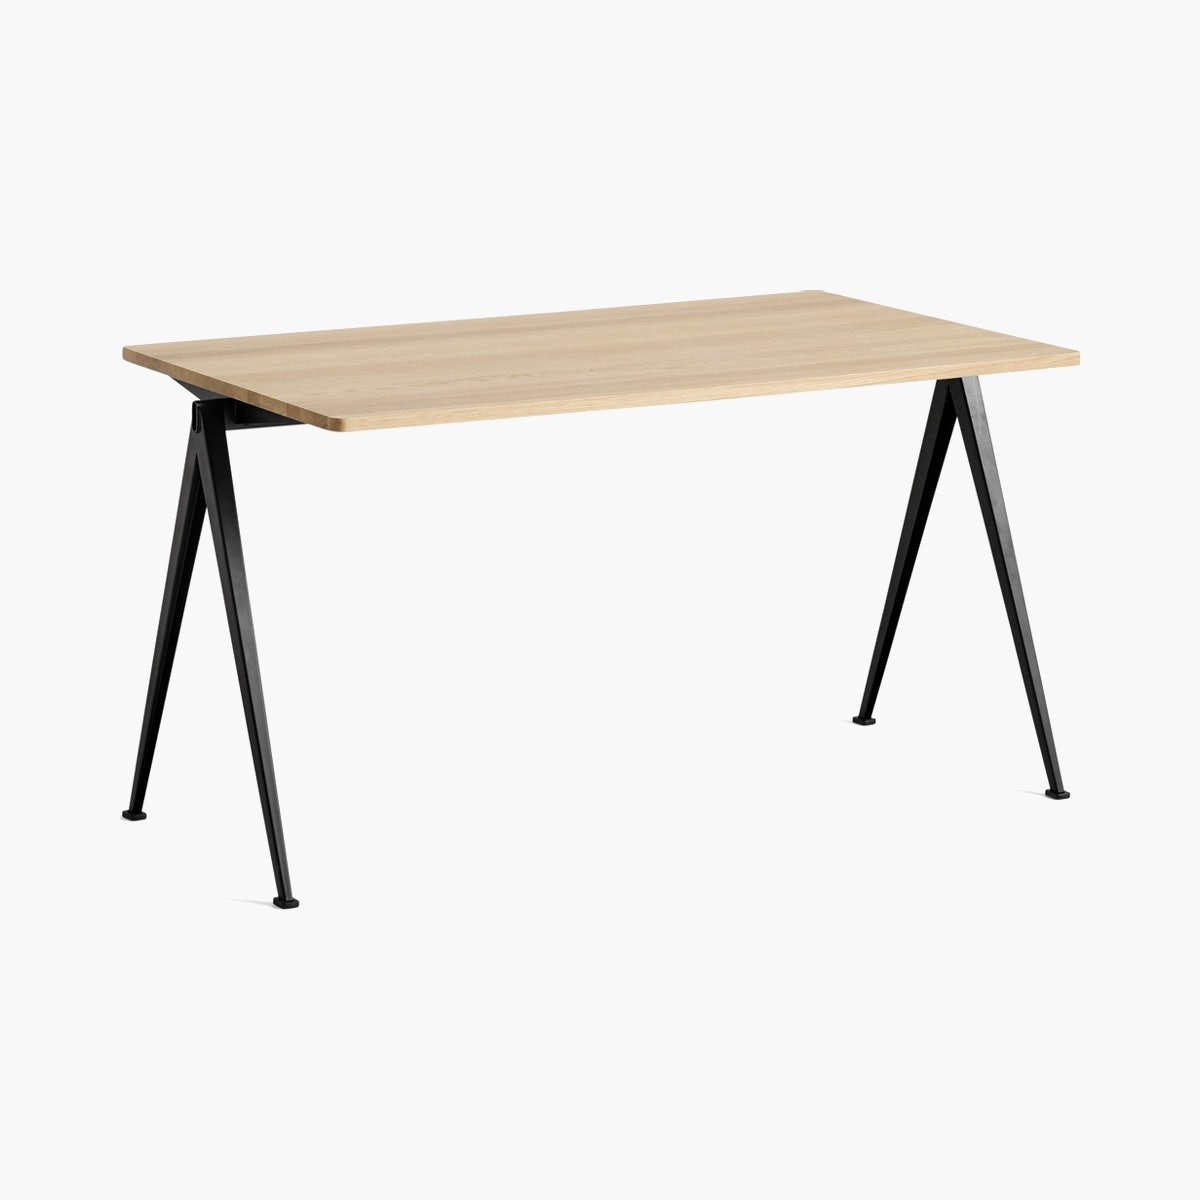 Pyramid Table 01 - Desk